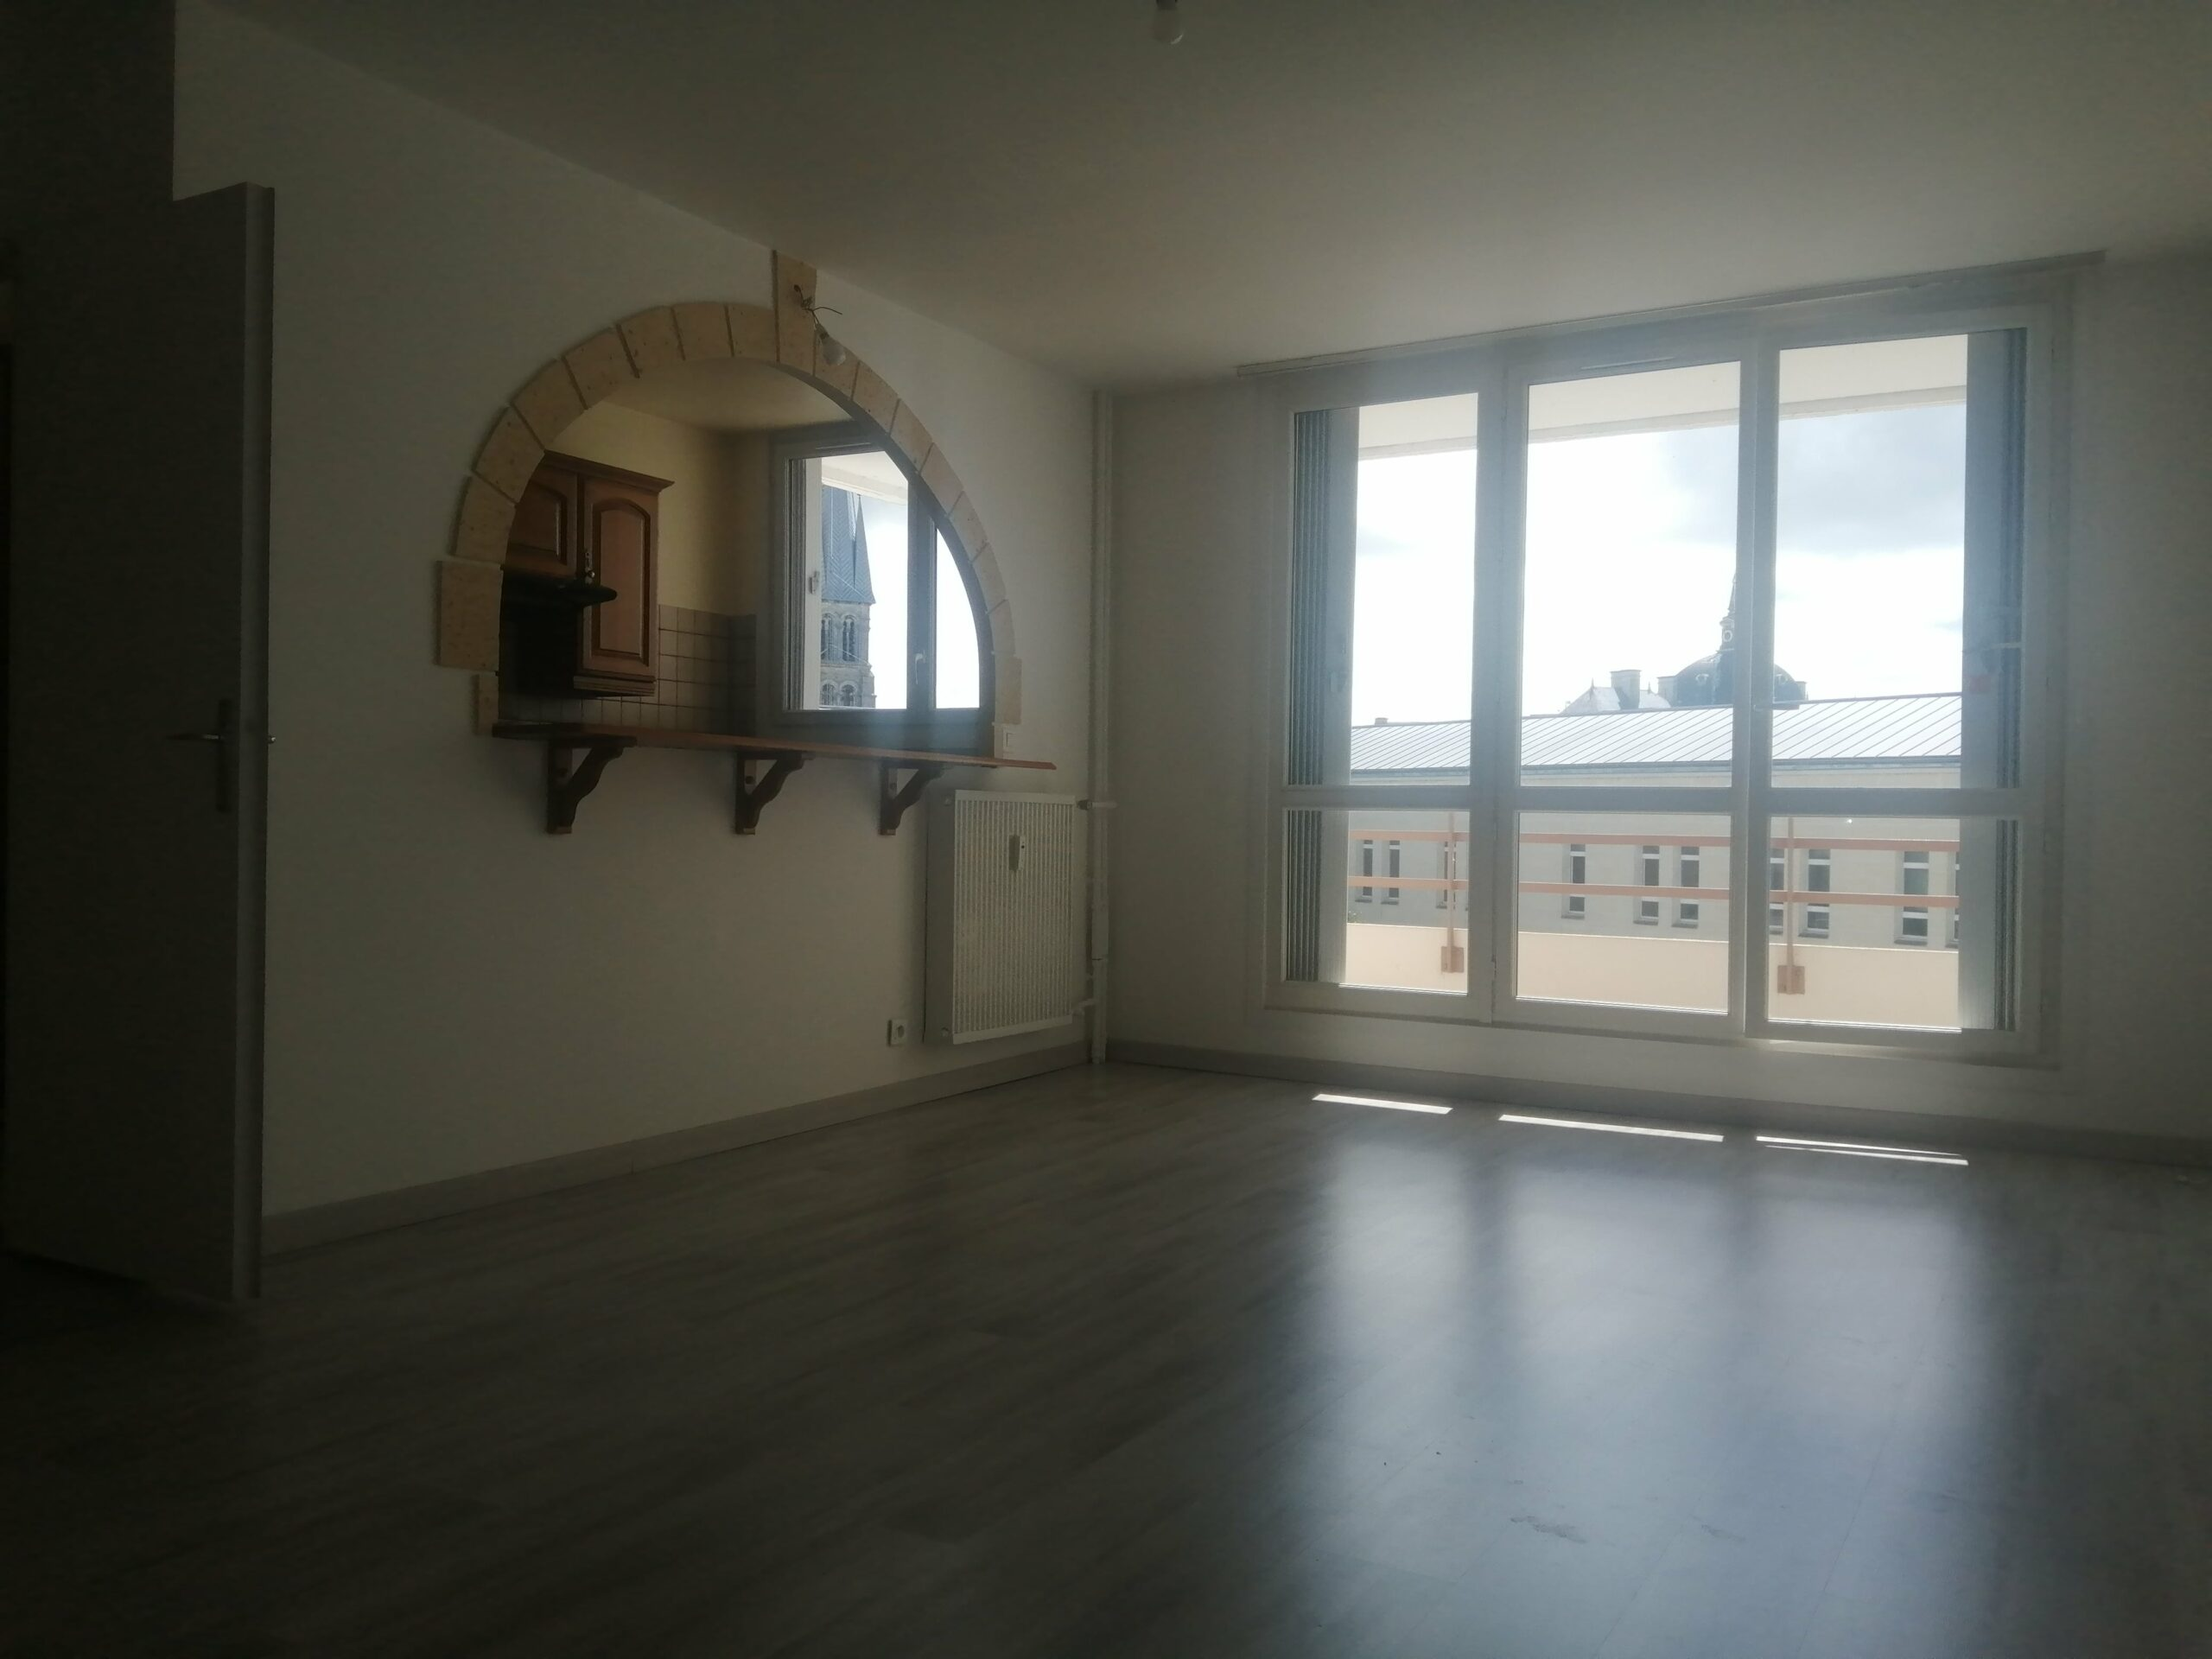 Damonte LOCATION APPARTEMENT T2 CHALONS EN CHAMPAGNE G472